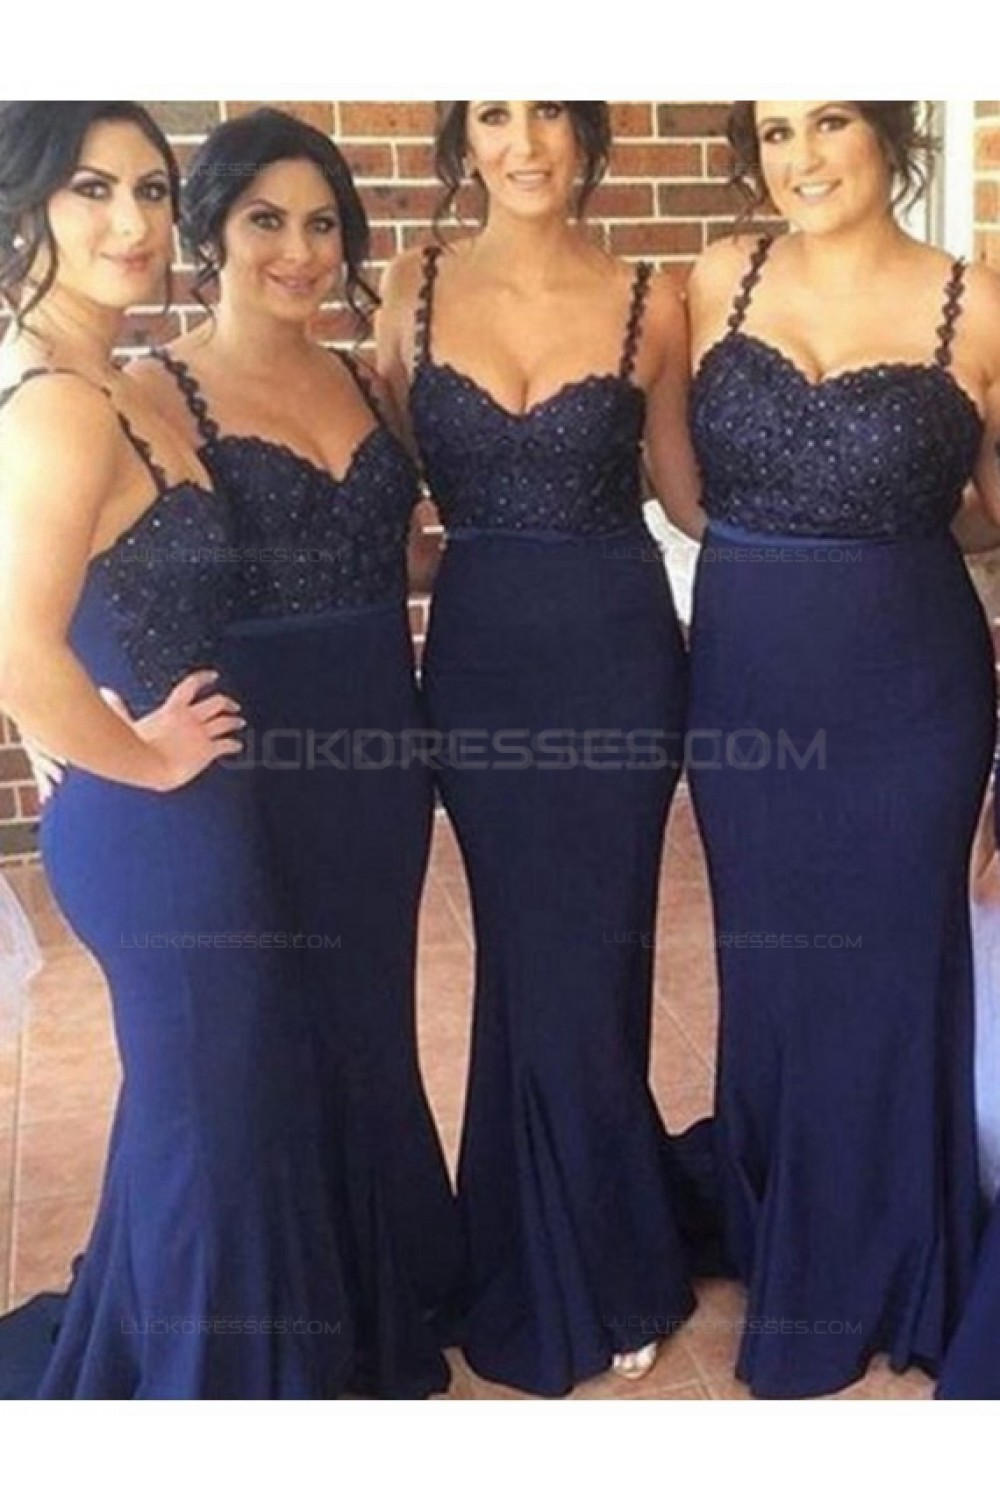 spaghetti straps navy wedding guest dresses bridesmaid